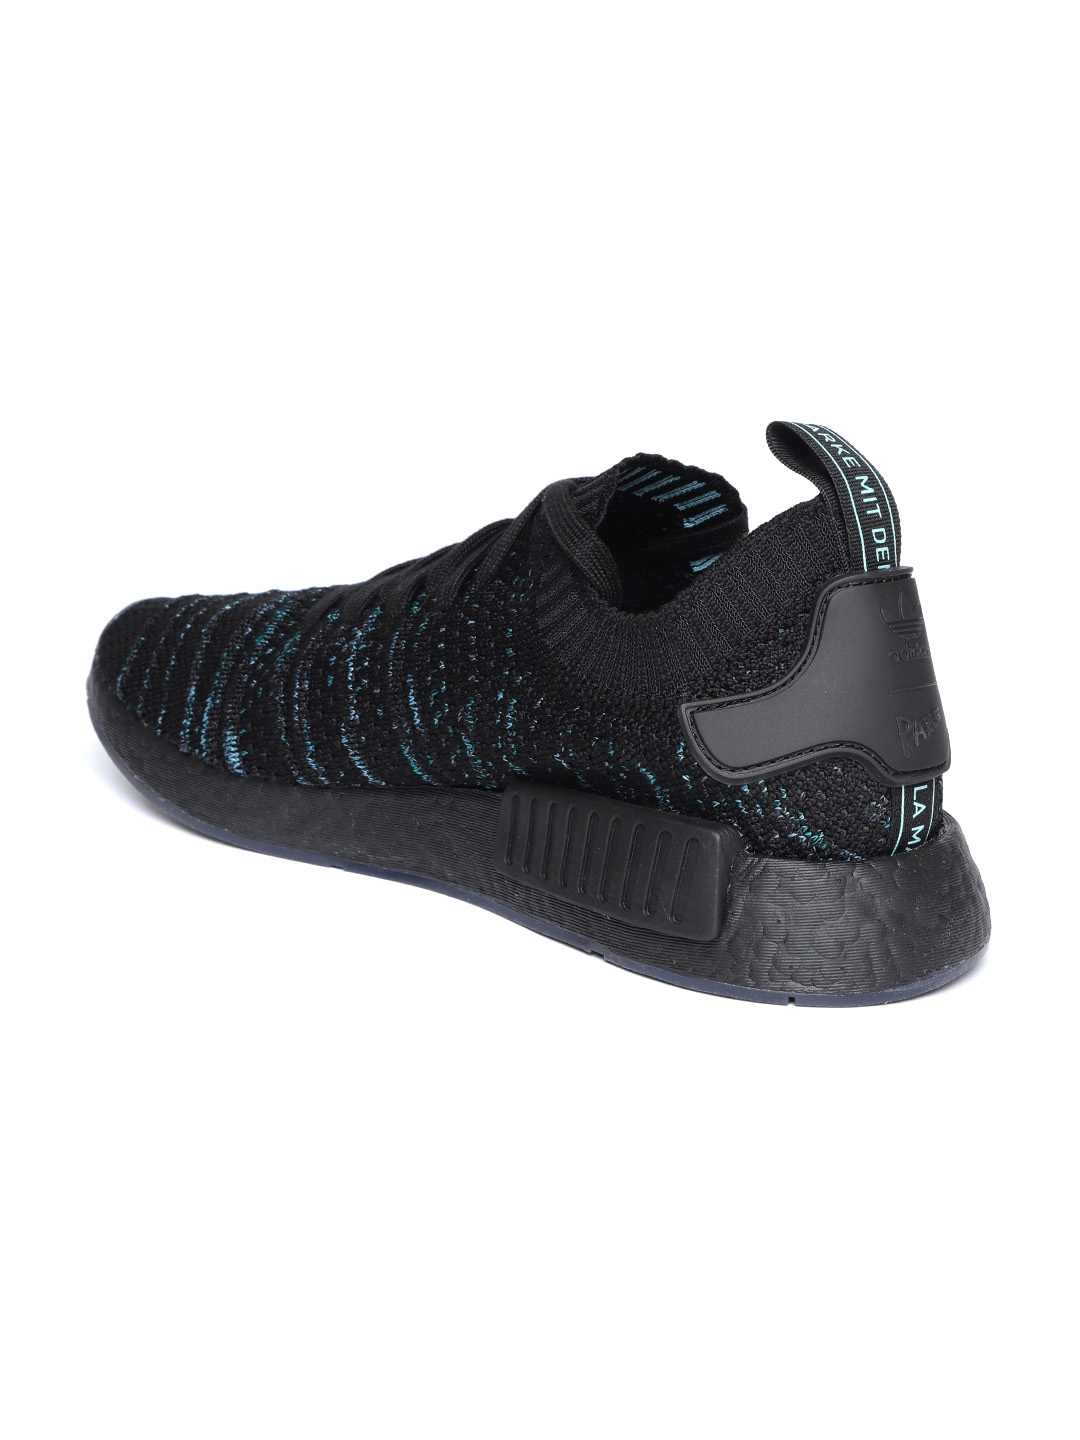 f6af8abcdce6d Buy ADIDAS Originals Men Black   Blue NMD R1 STLT Parley PK Sneakers ...